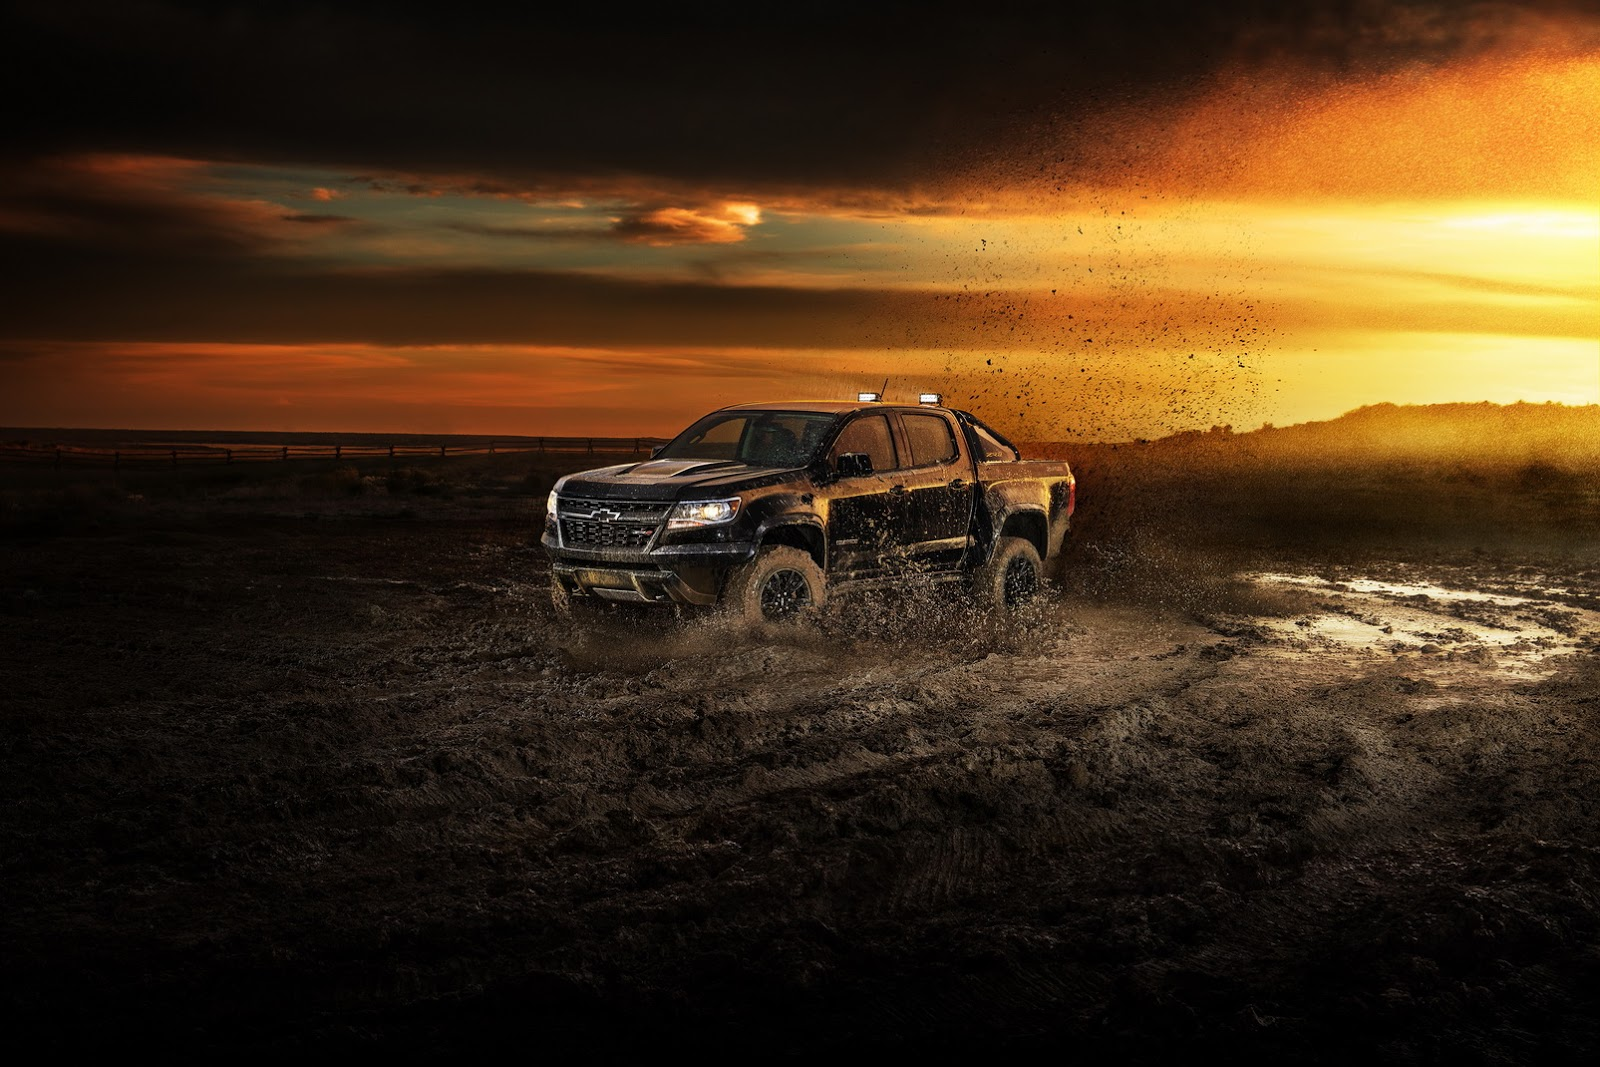 chevy-colorad-zr2-midnight-dusk-4